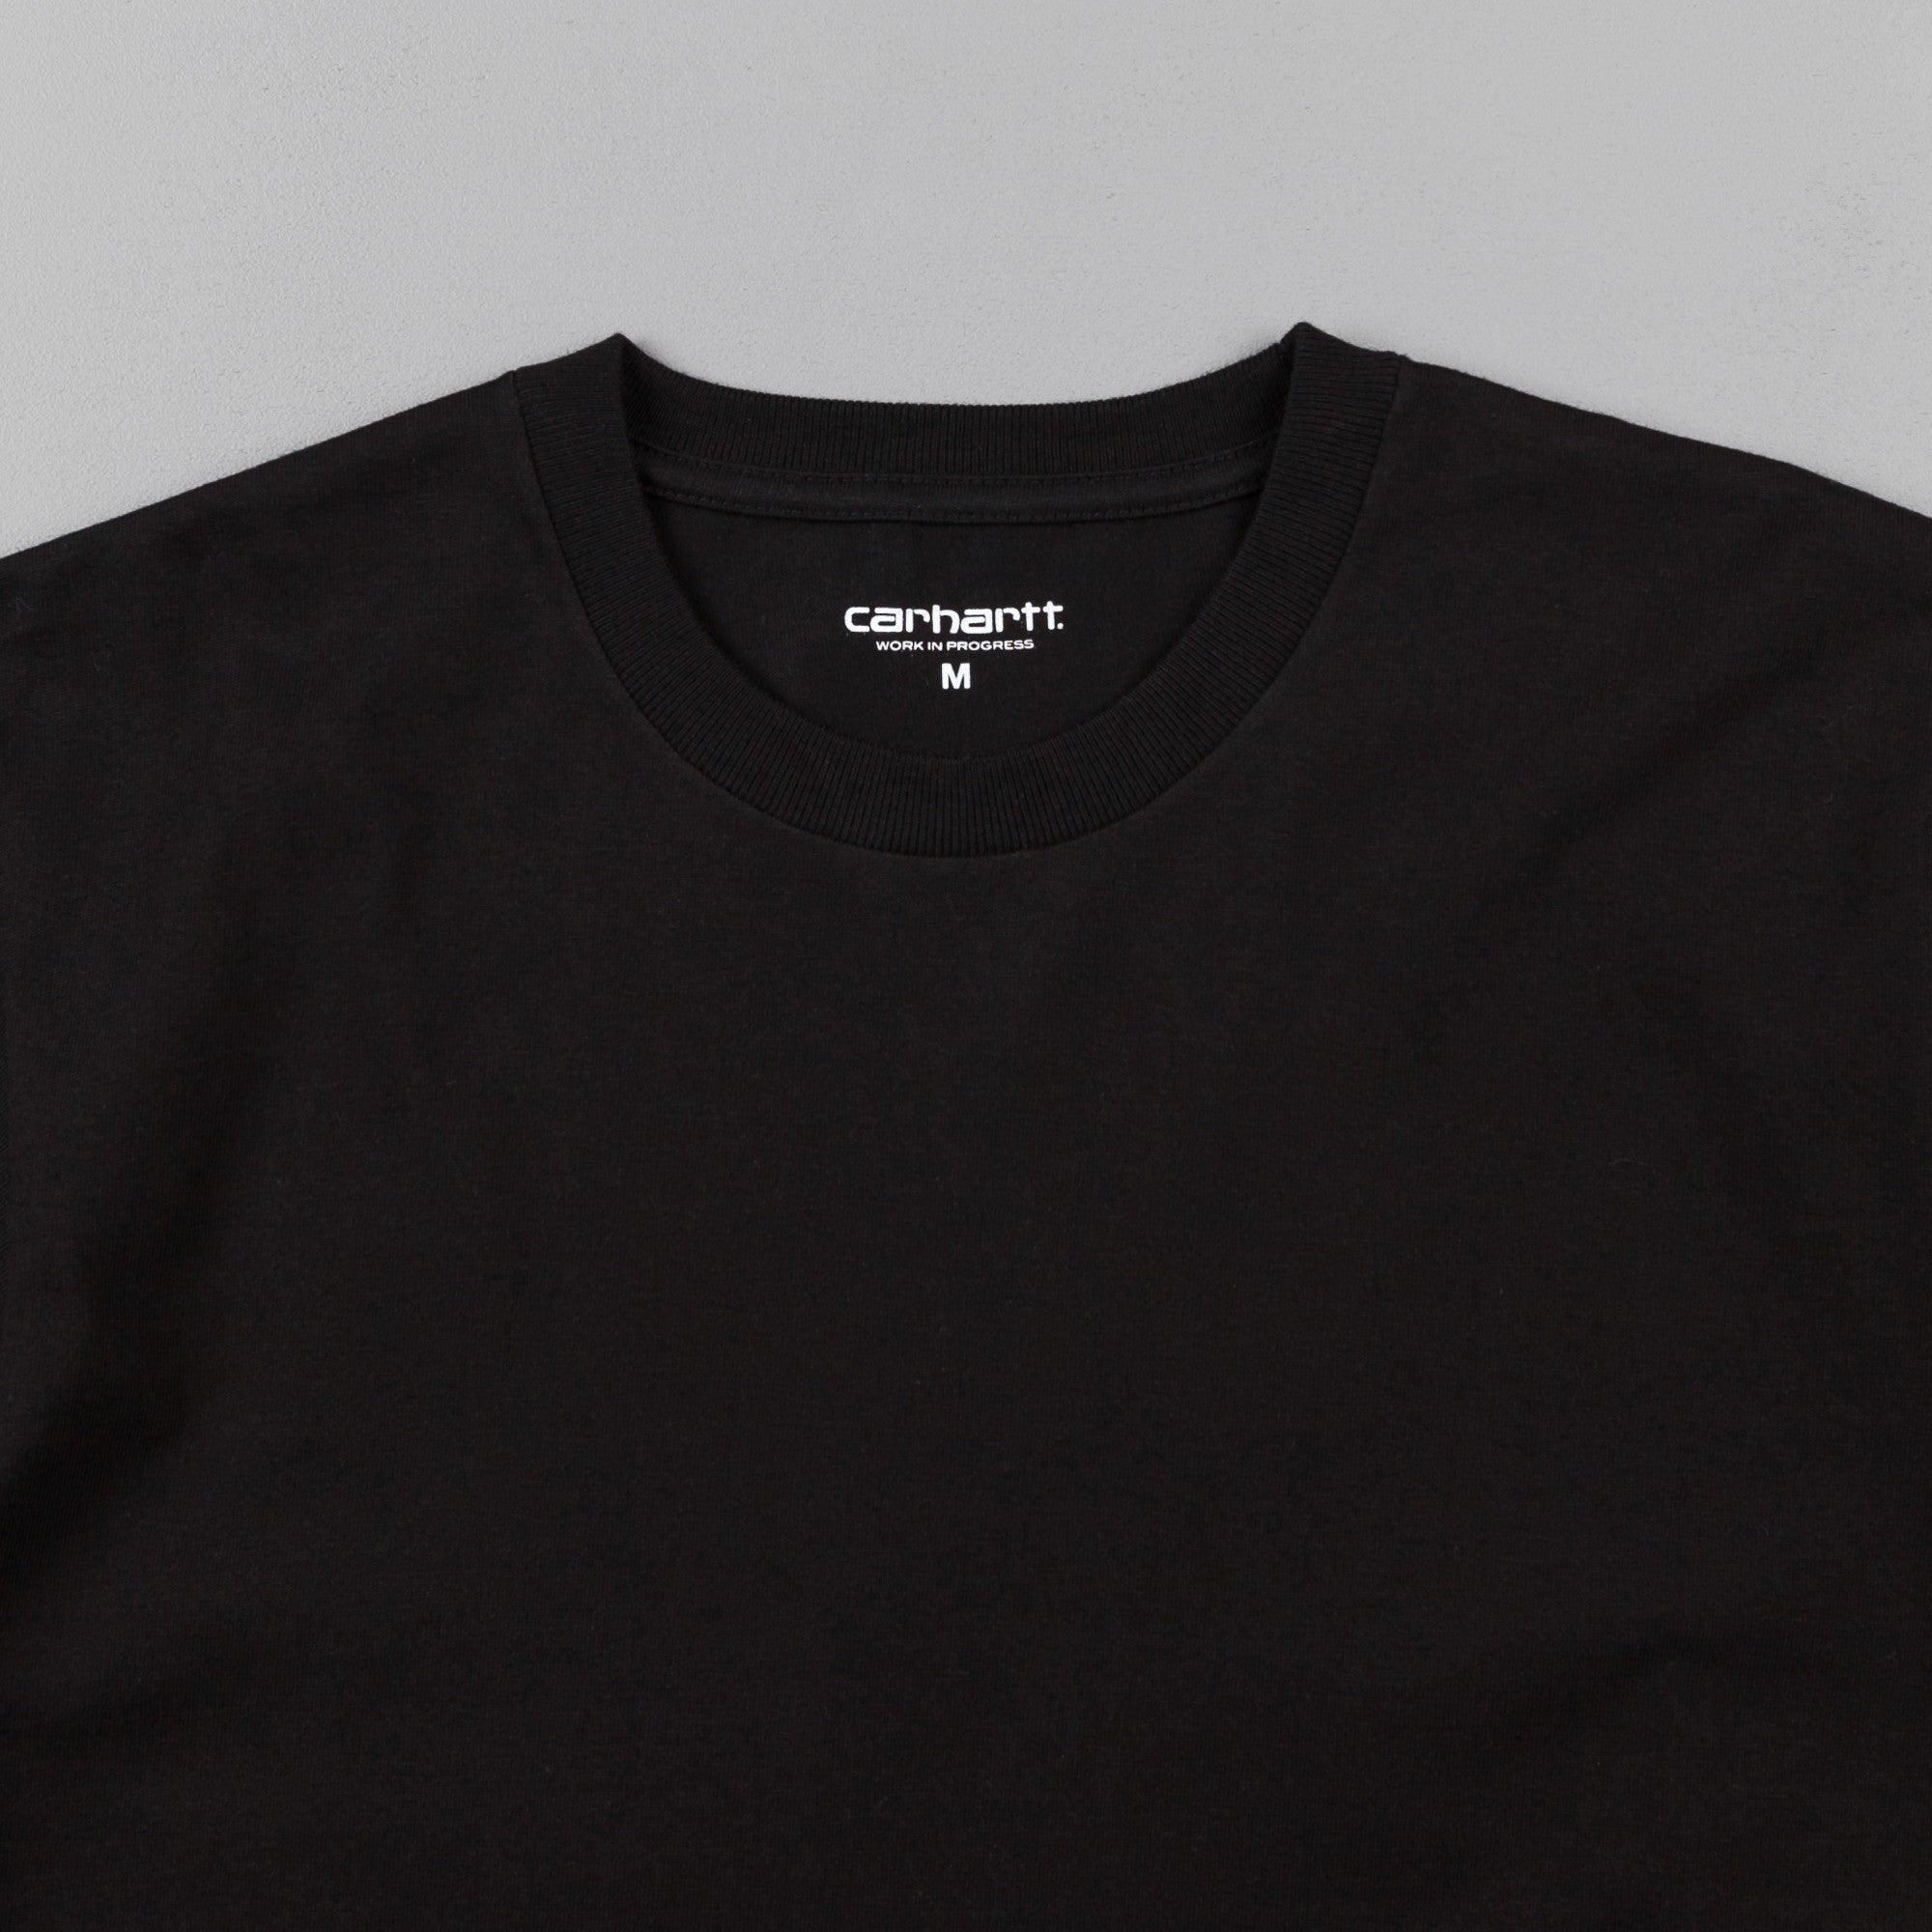 Carhartt State T-Shirt - Black / White